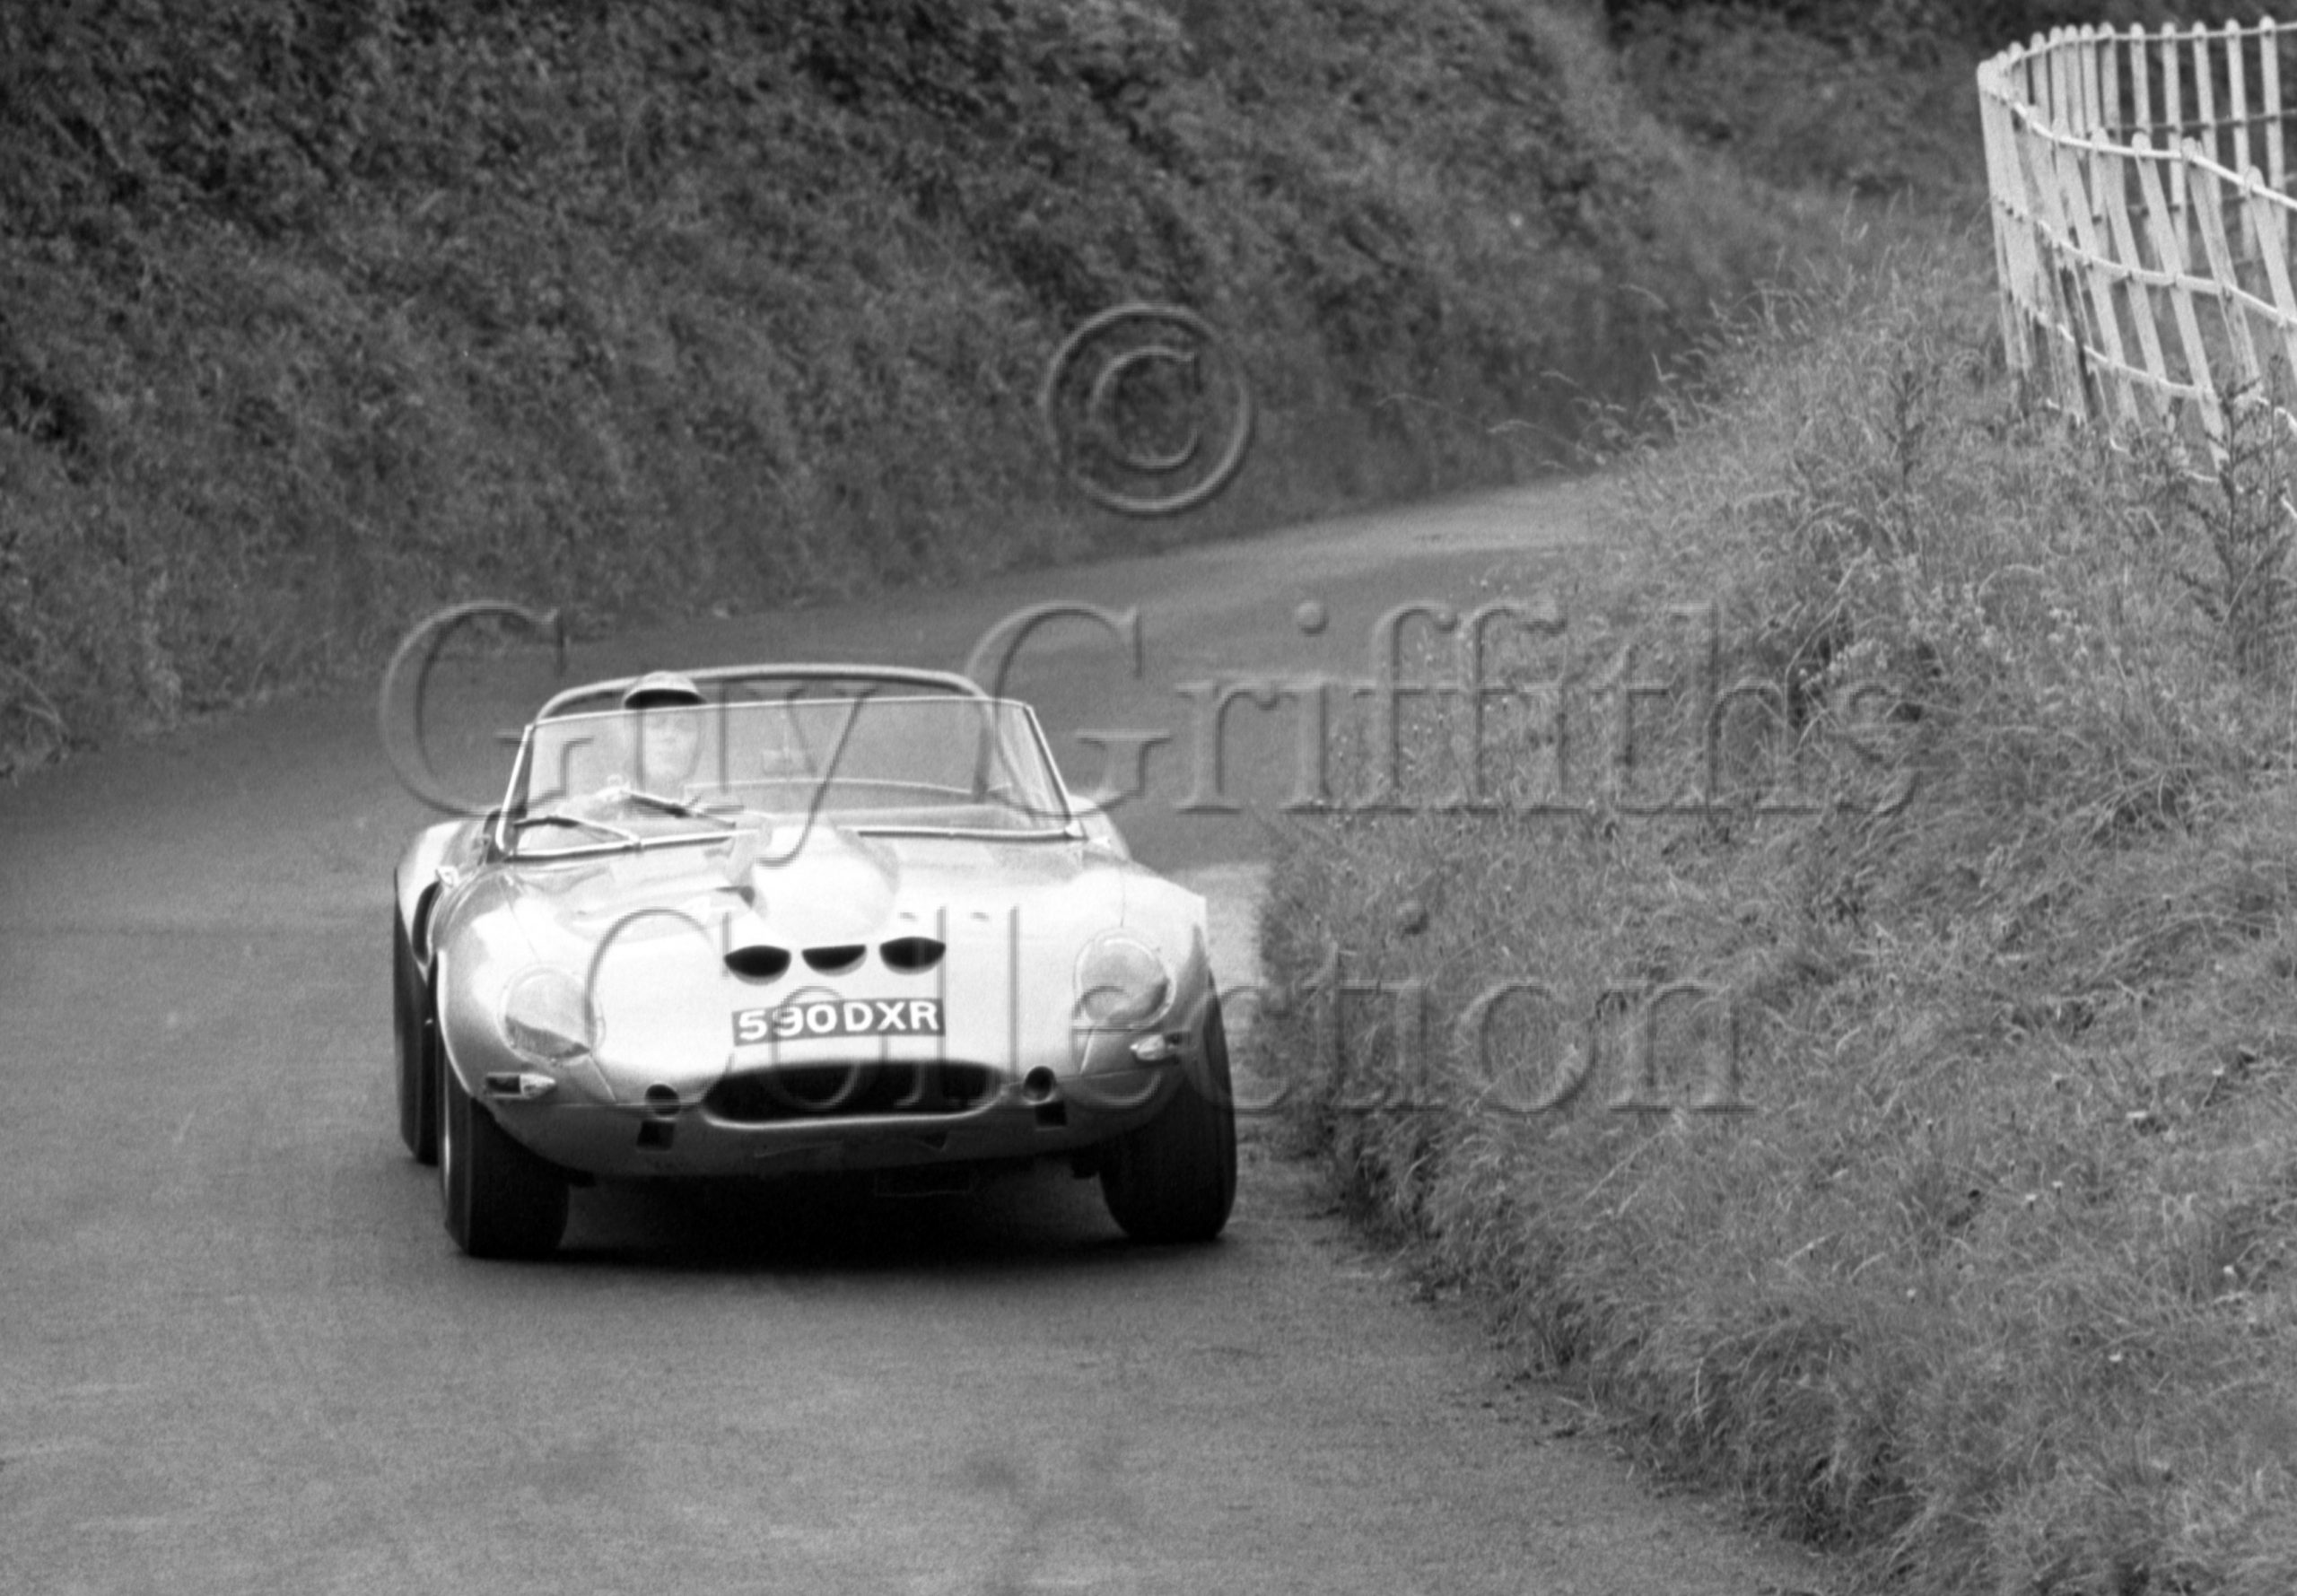 109-873–B-R-Williams–Jaguar-Egal-590-DXR–Shelsley-Walsh–14-07-1968.jpg - Guy Griffiths Collection